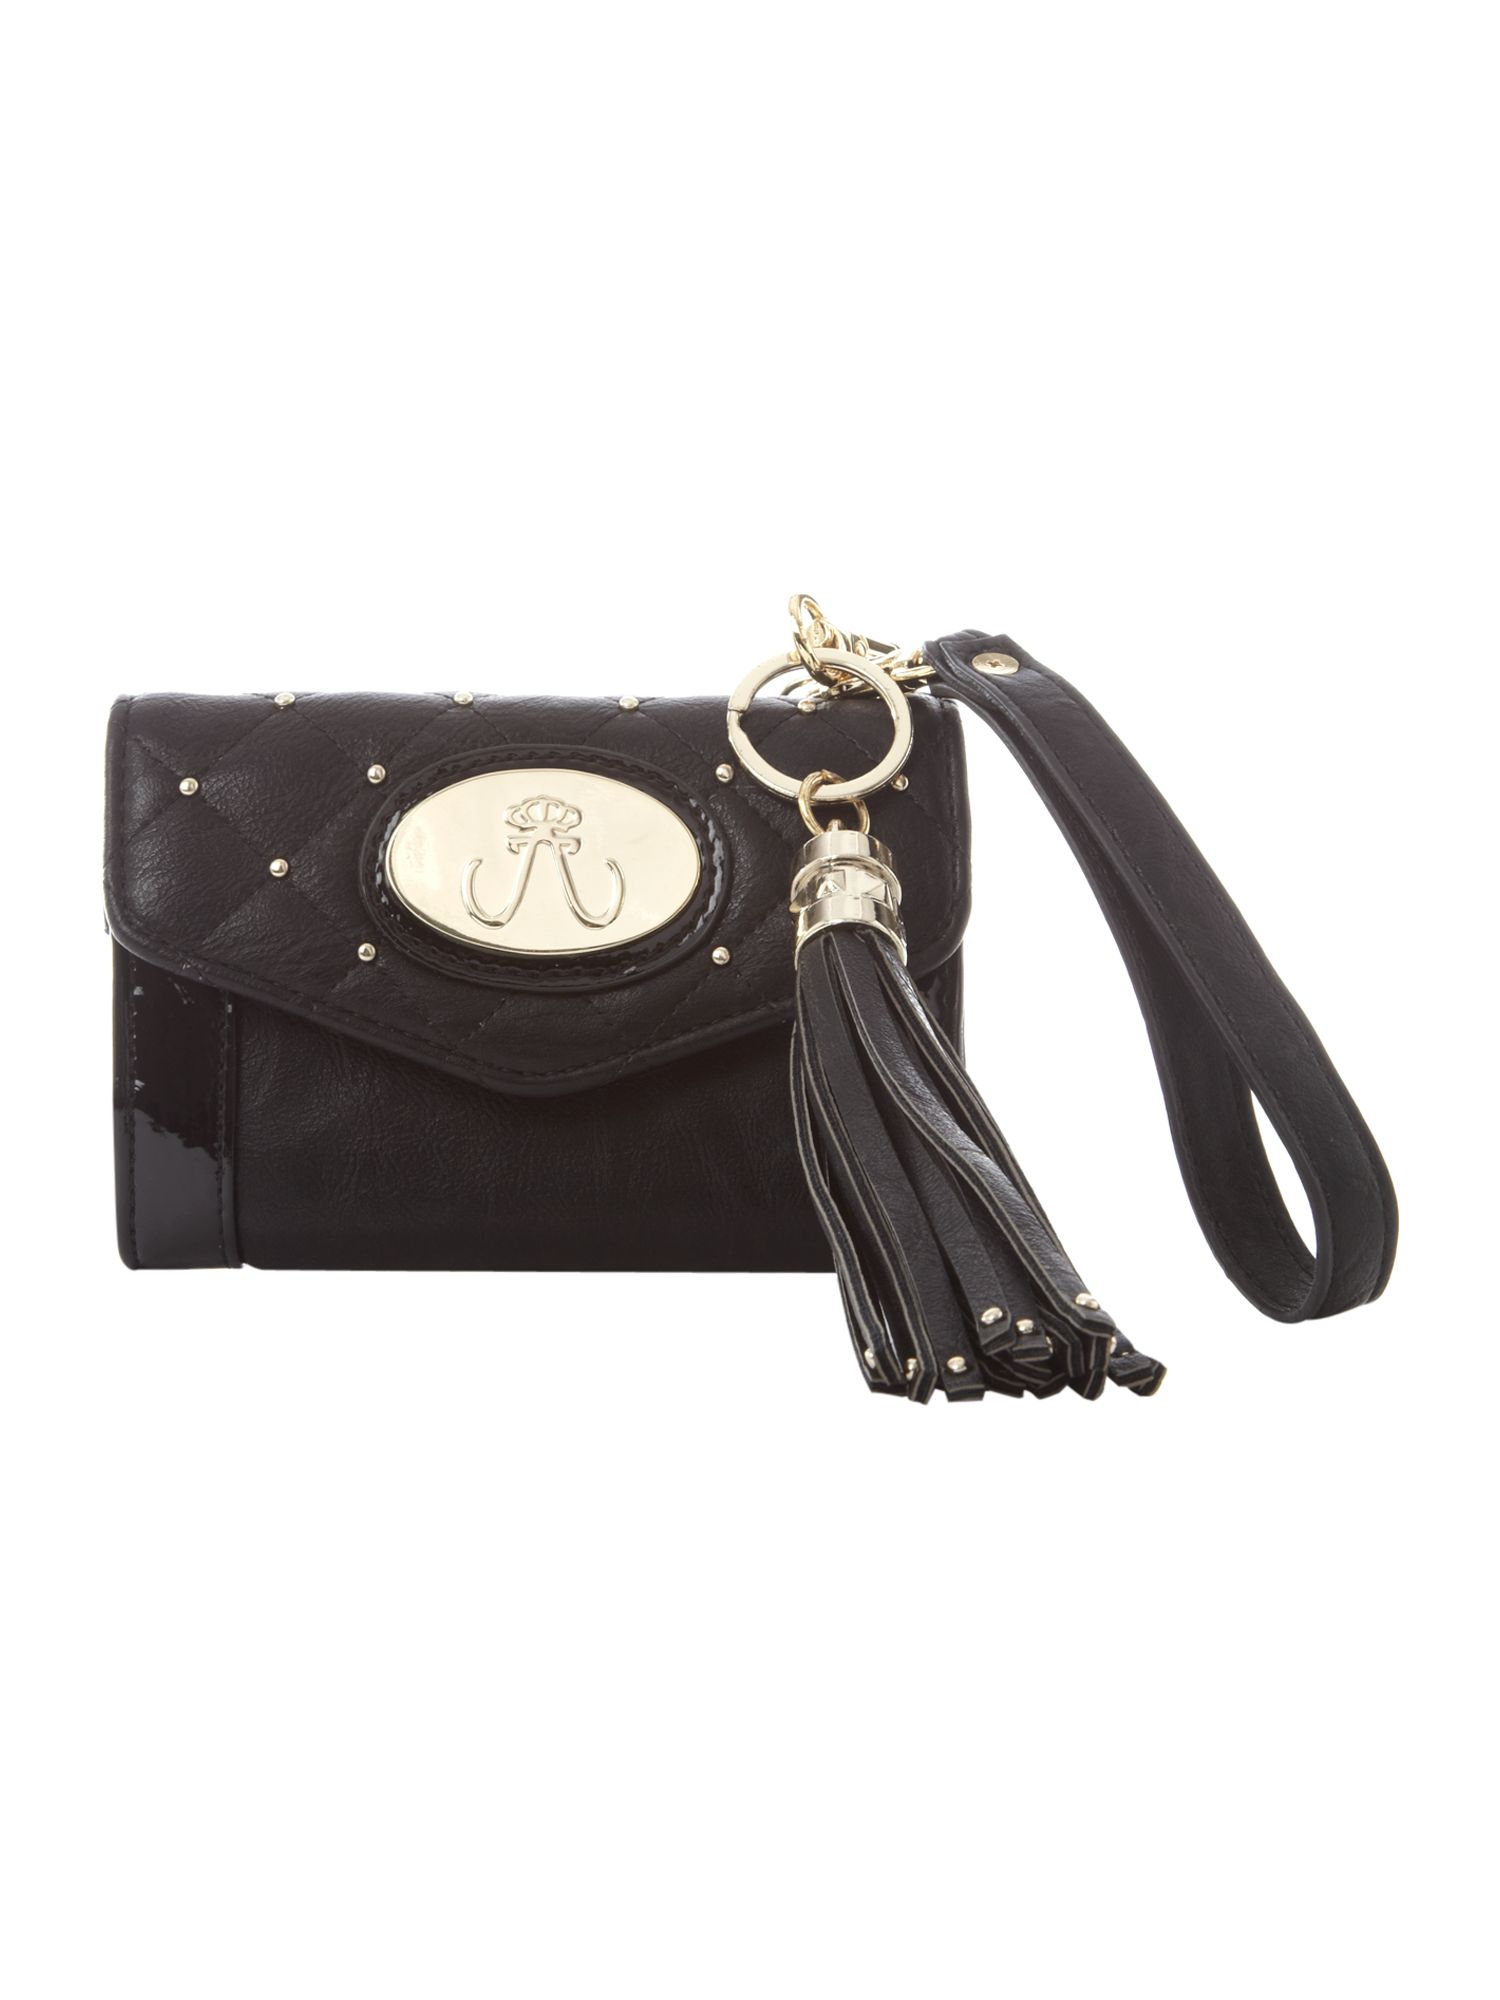 Studded purse and keyring boxset